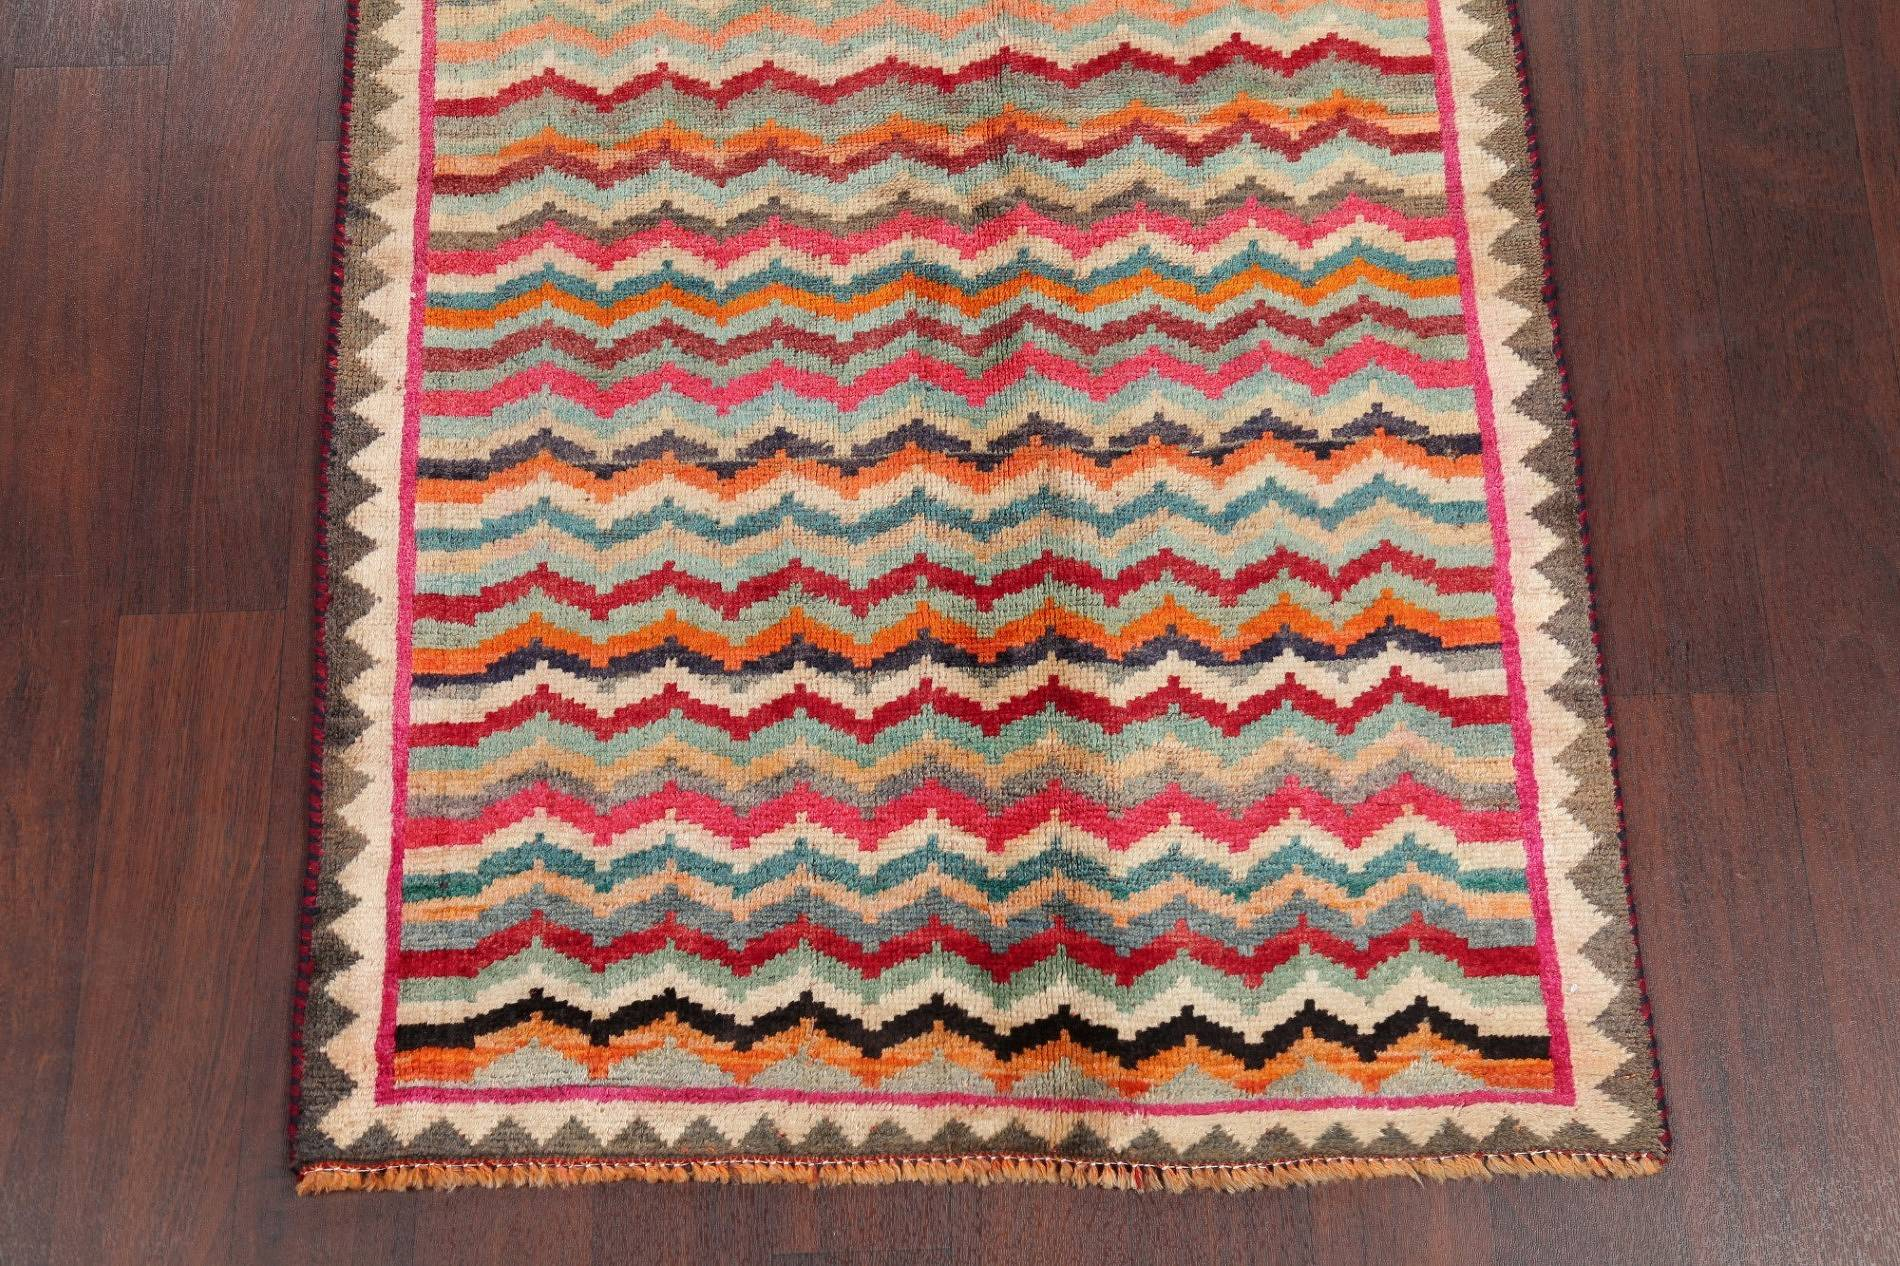 Antique Gabbeh Persian Hand-Knotted 3x6 Wool Runner Rug